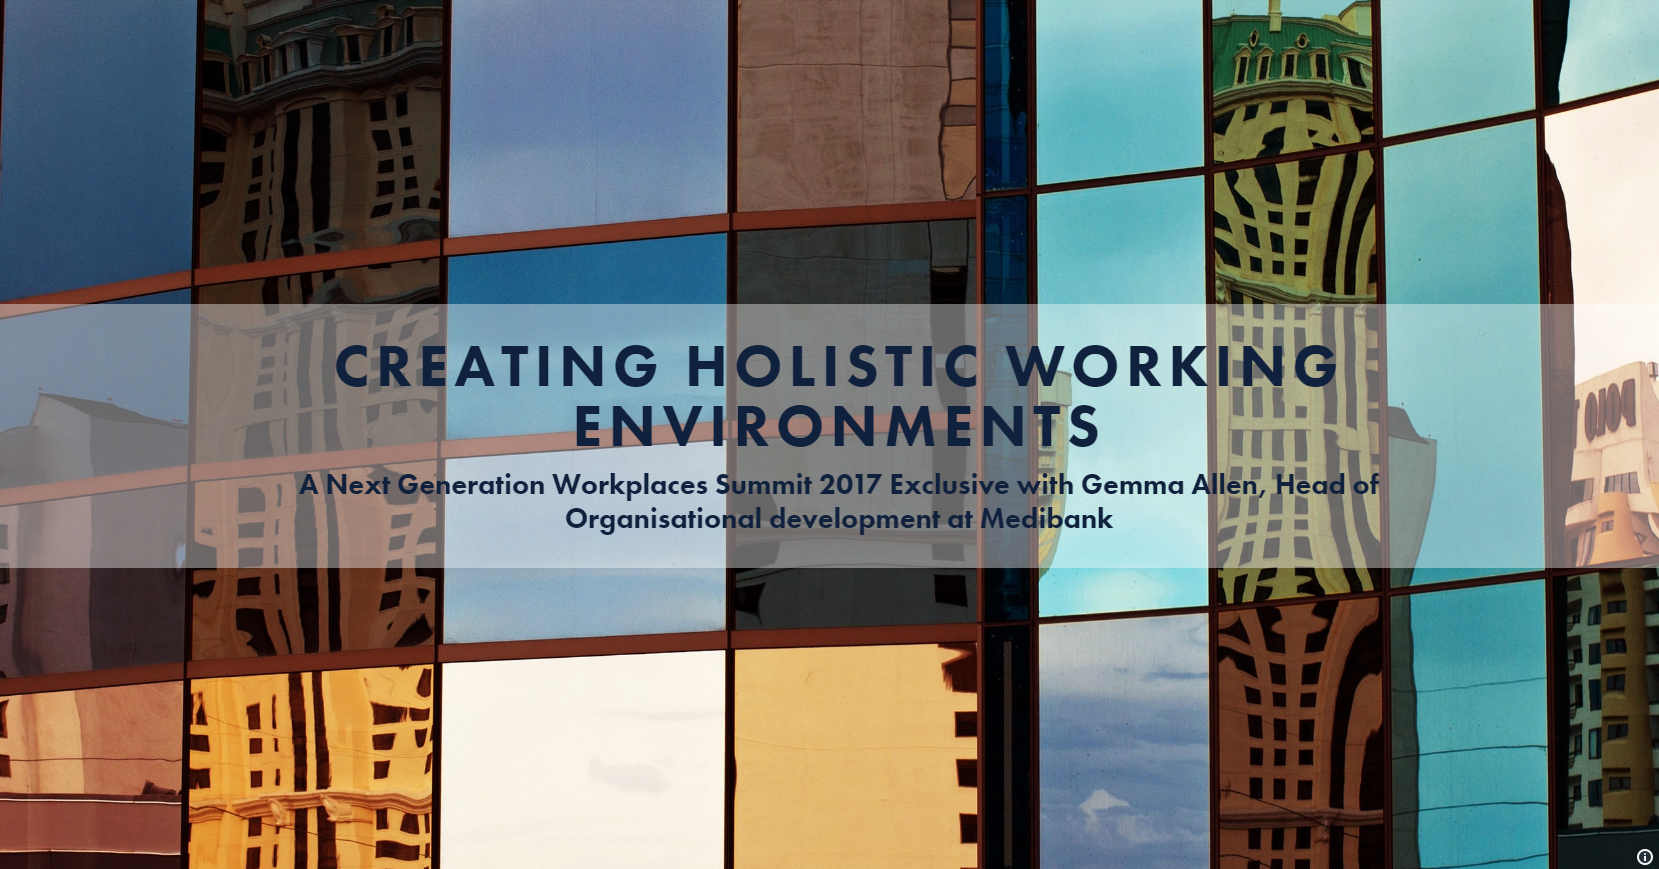 Creating Holistic Working Environments